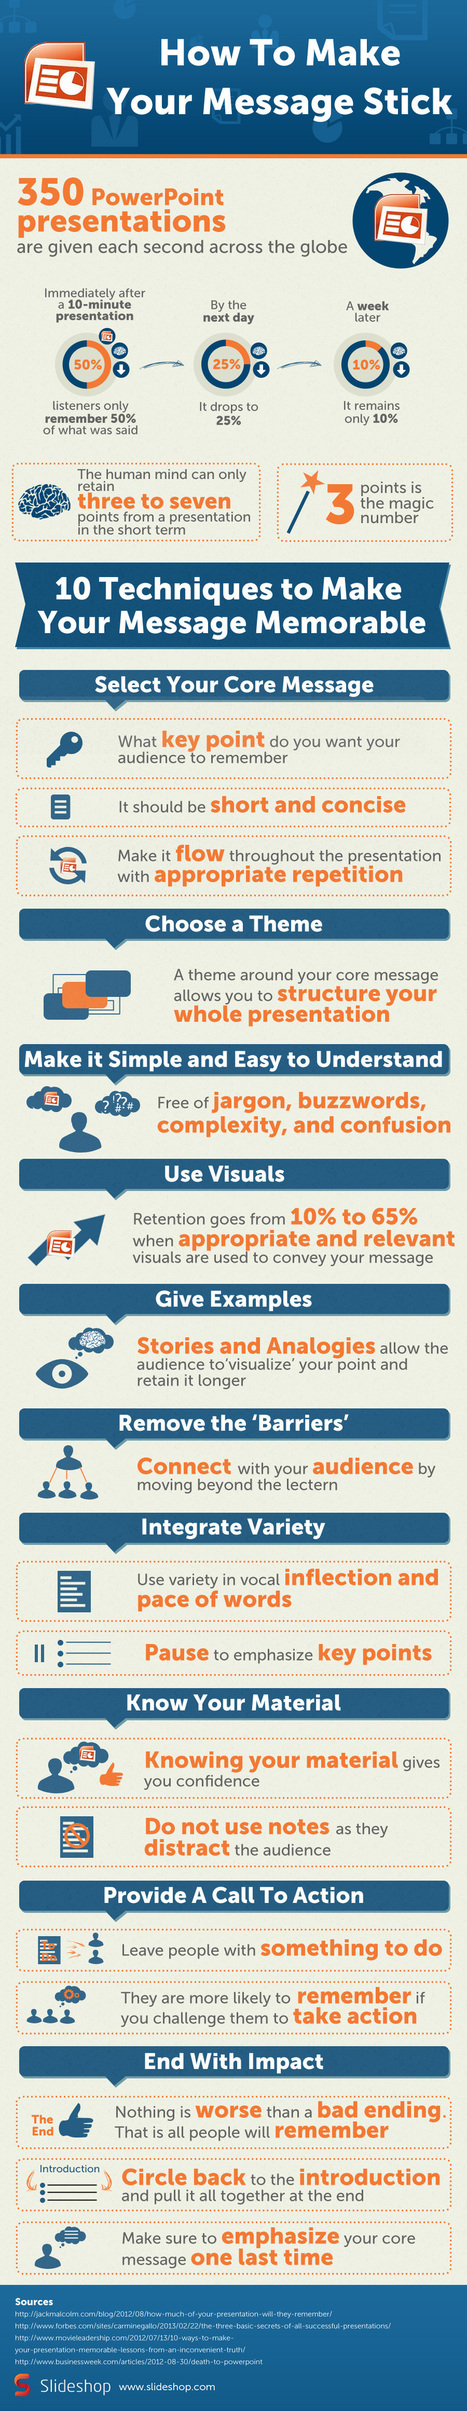 Presentations Infographic: Making Your Message Stick | General Technology Info | Scoop.it